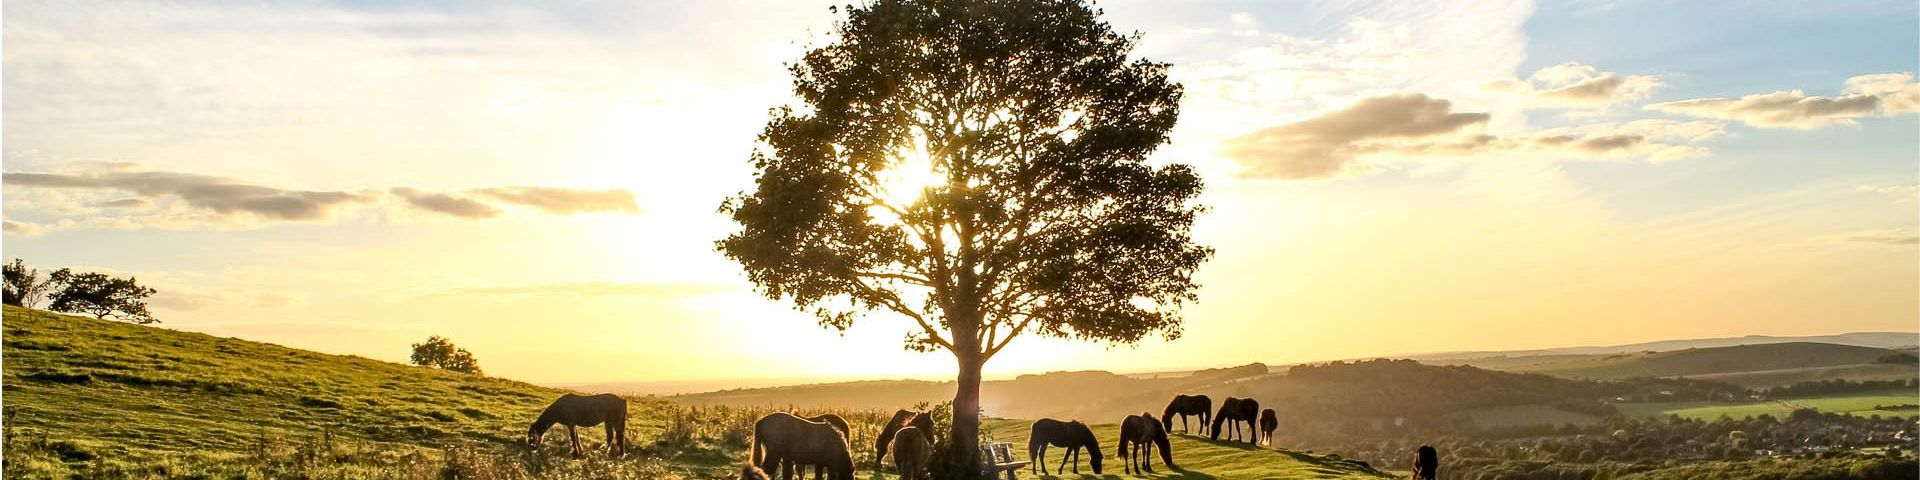 A tree, surrounded by horses in a deserted landscape, against a bright sunset.